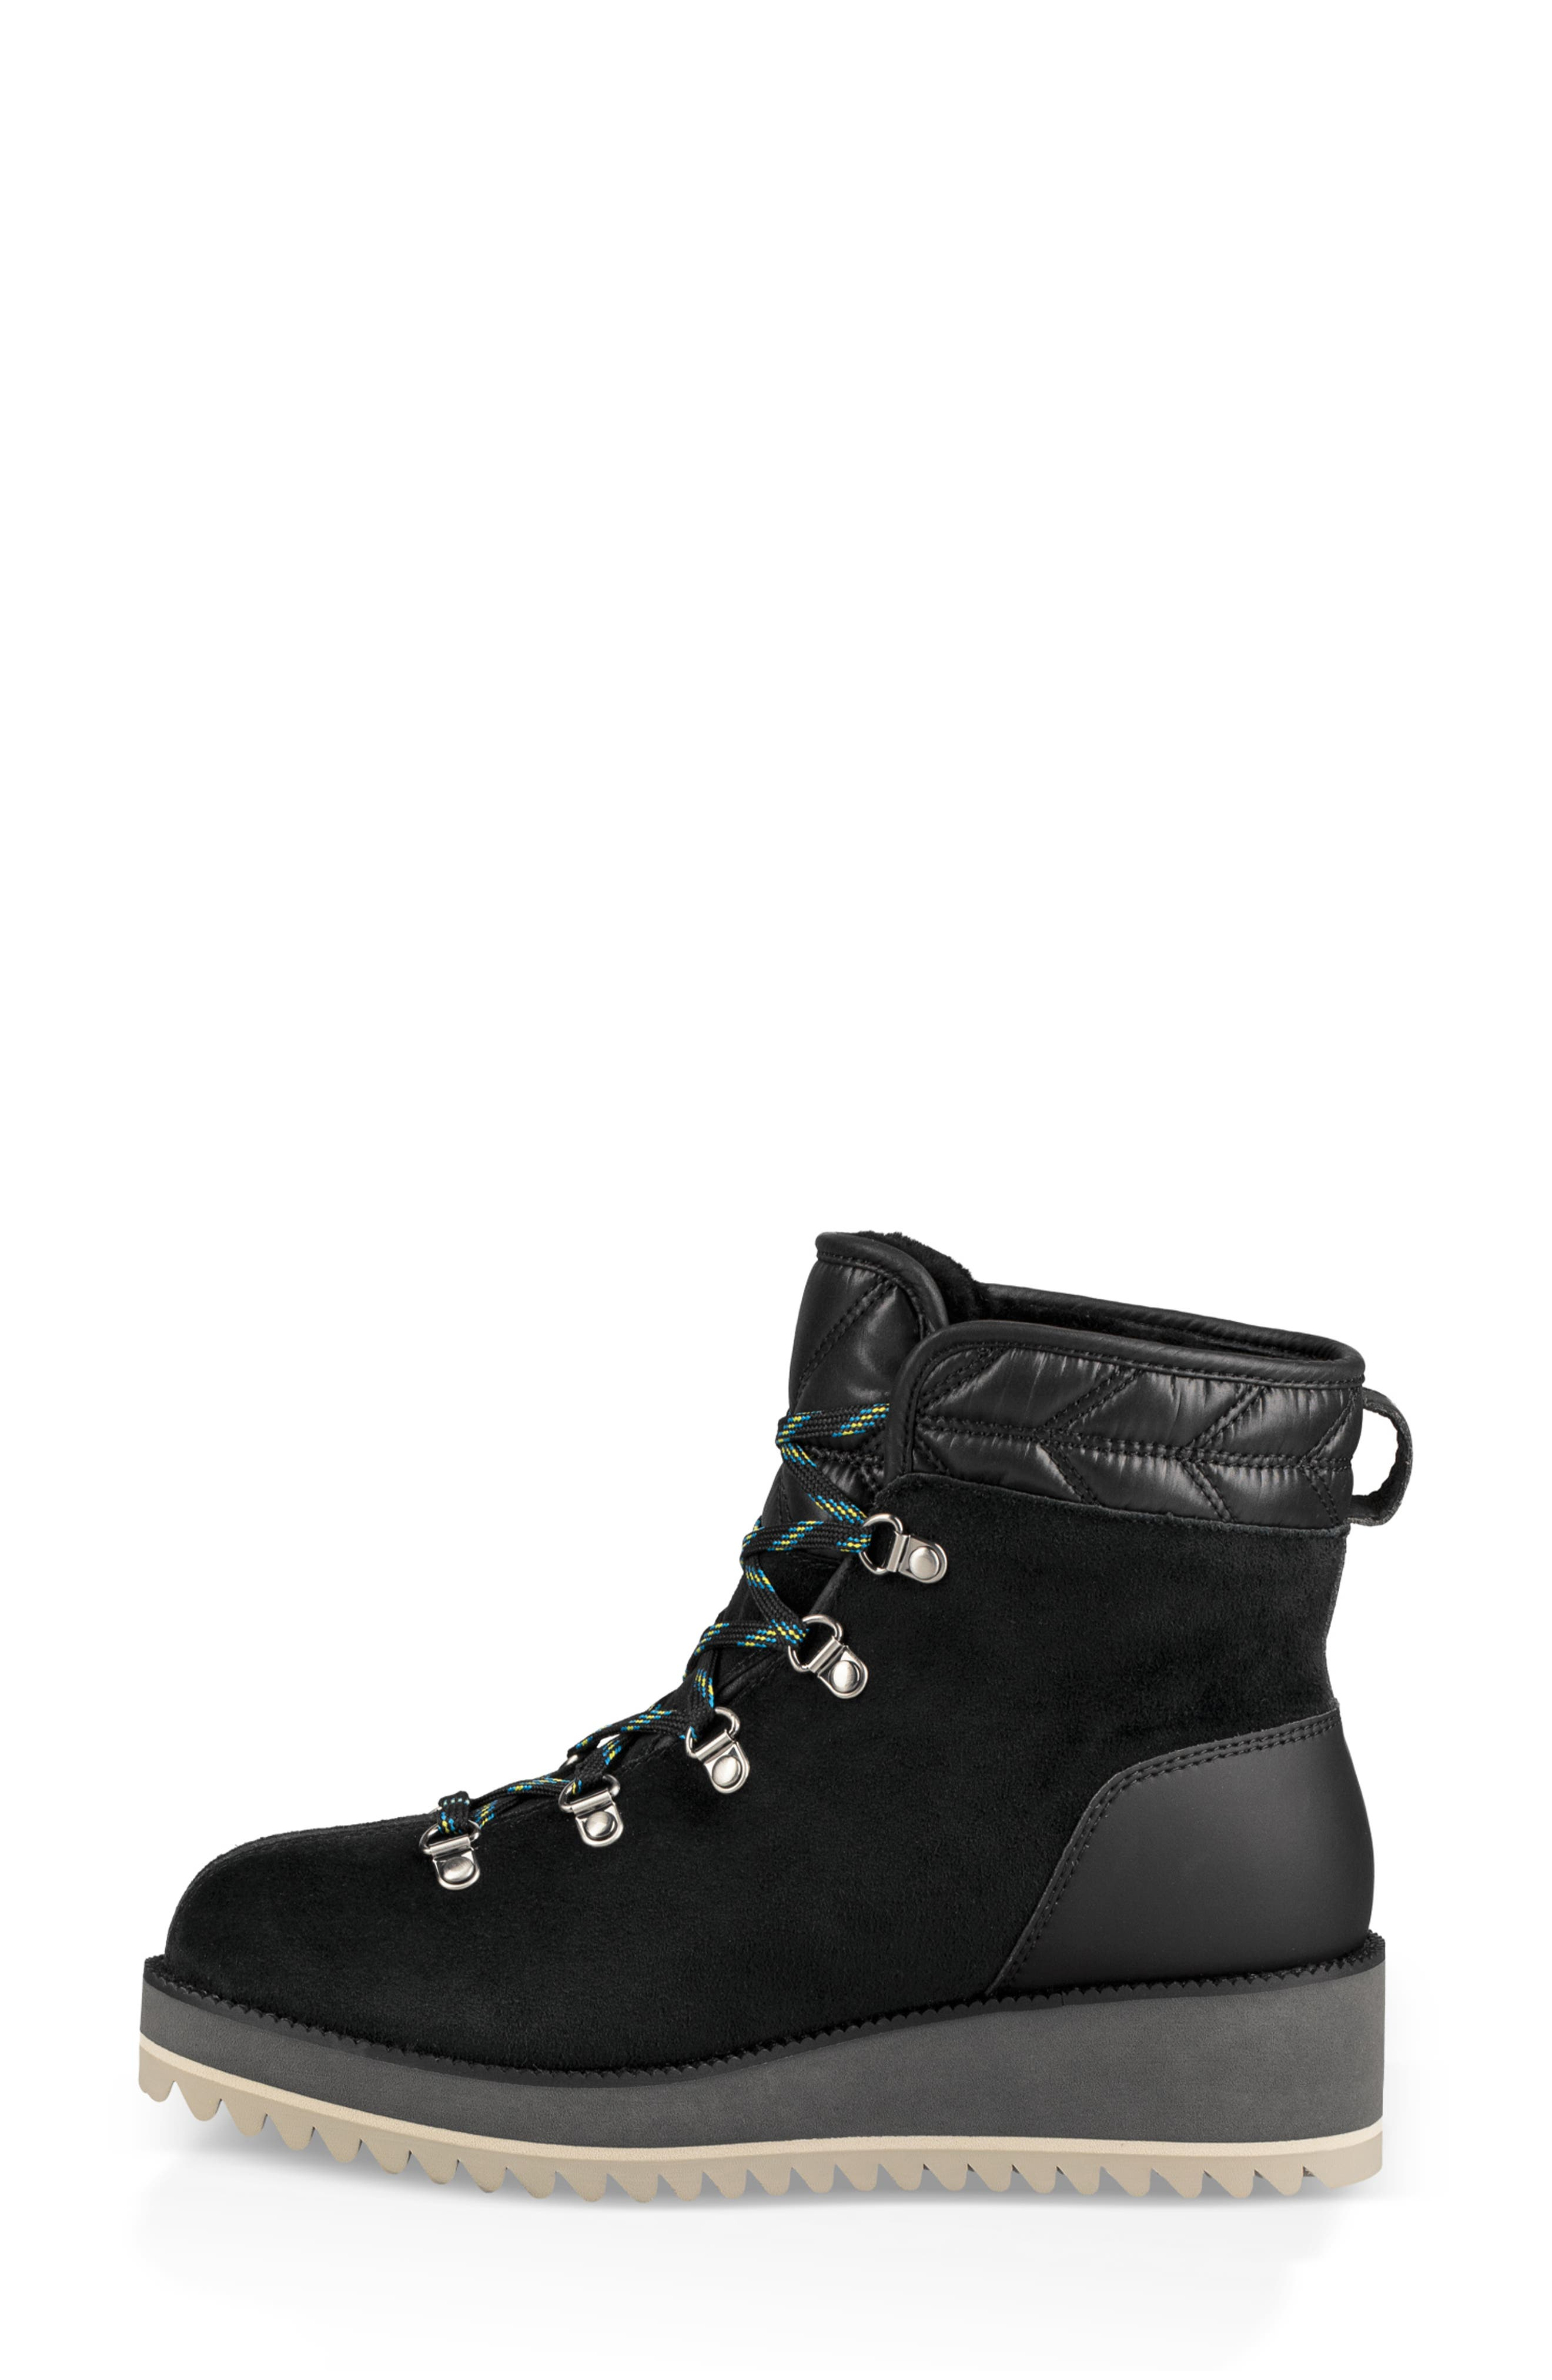 UGG<SUP>®</SUP>, Birch Waterproof Lace-Up Winter Bootie, Alternate thumbnail 7, color, BLACK